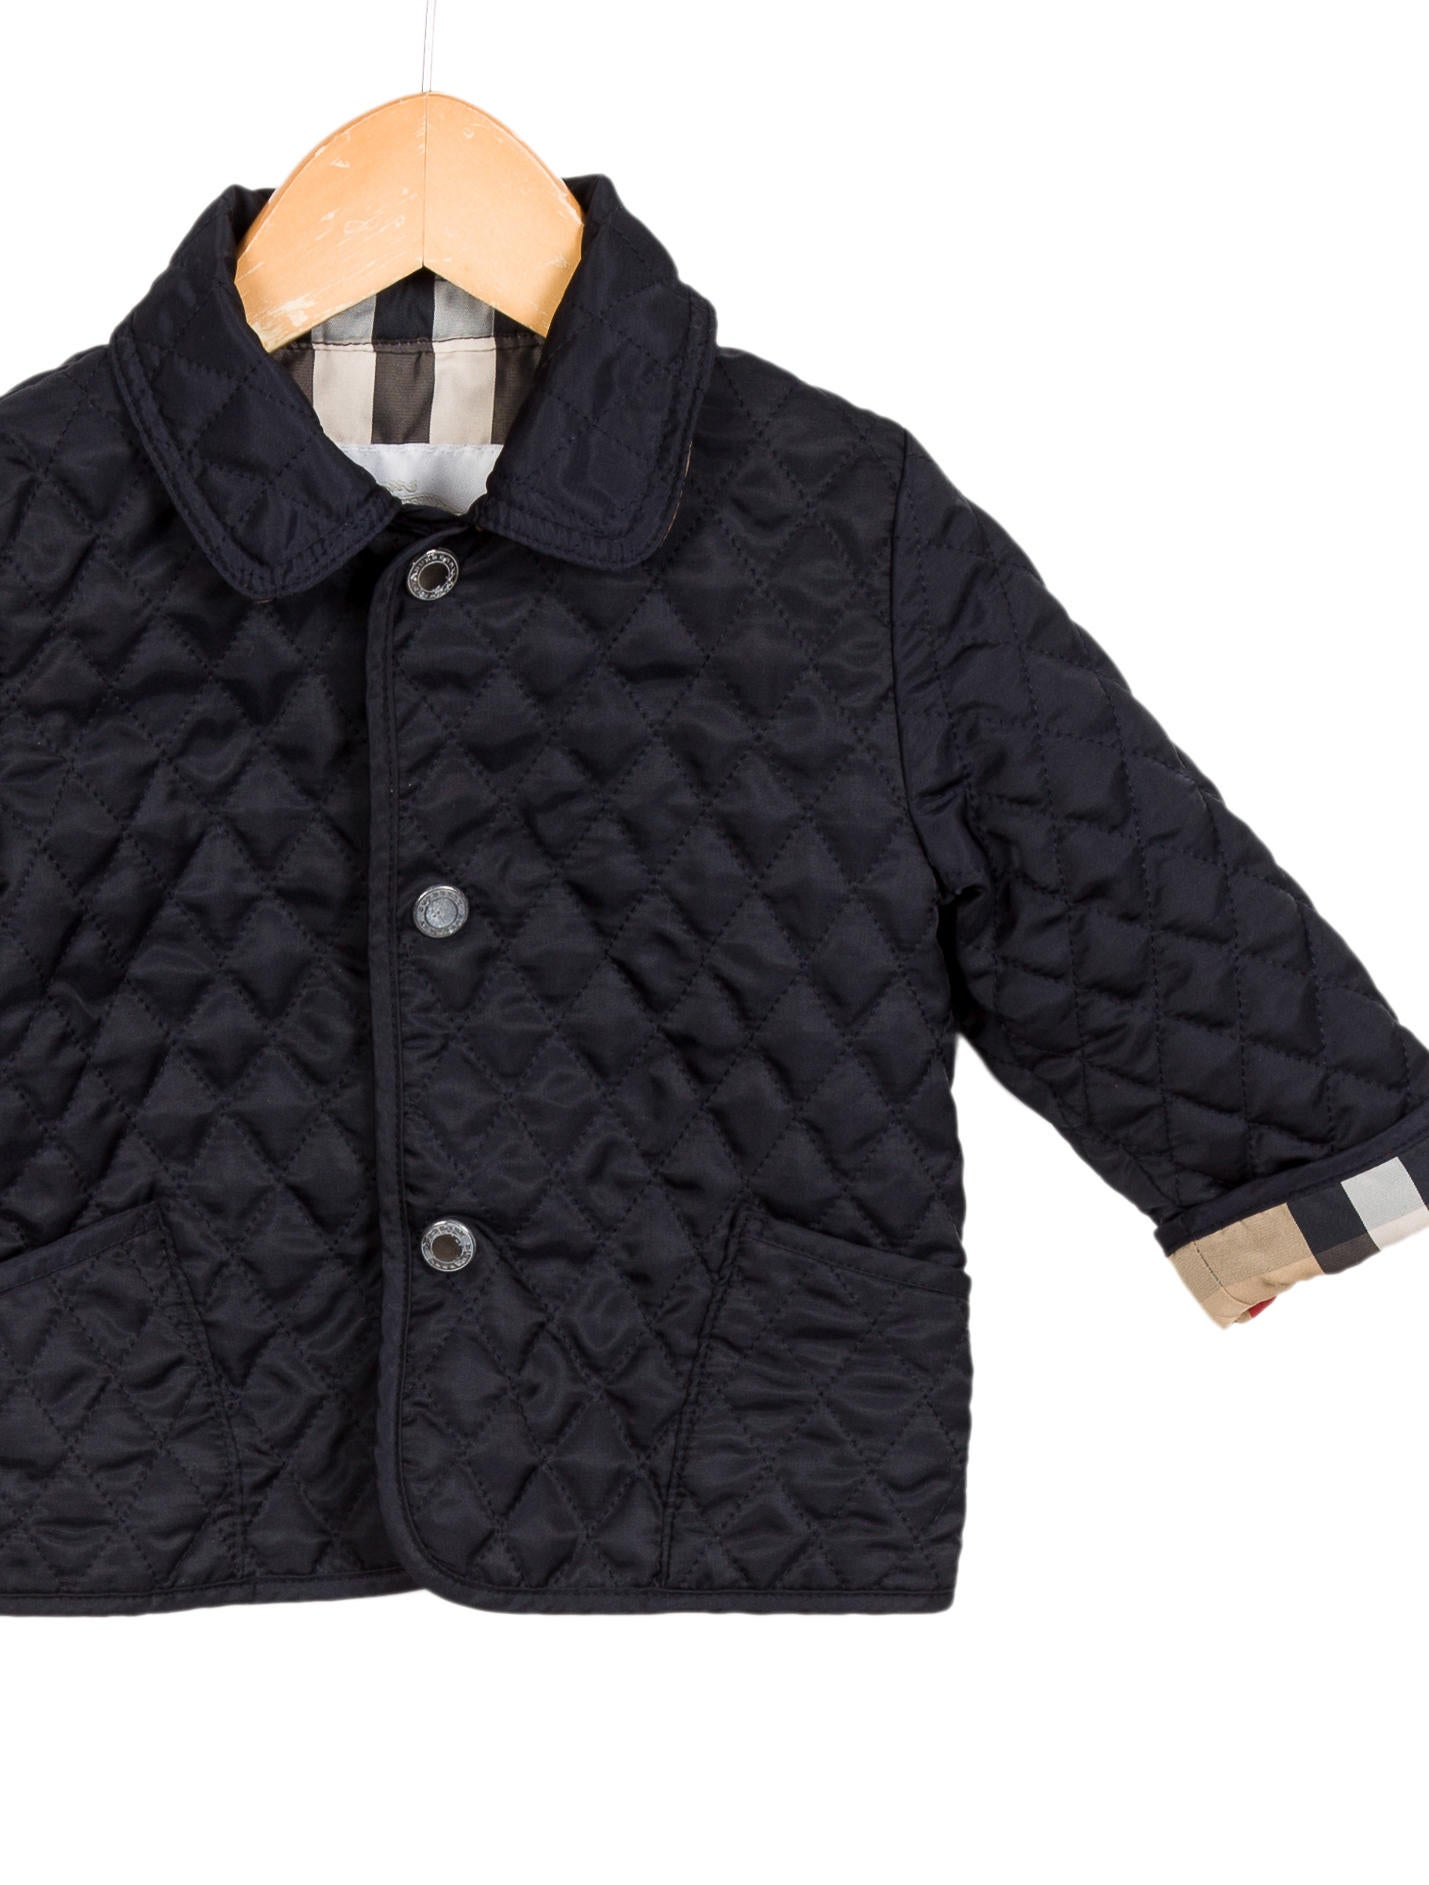 Buy low price, high quality boys quilted jackets with worldwide shipping on trueufile8d.tk